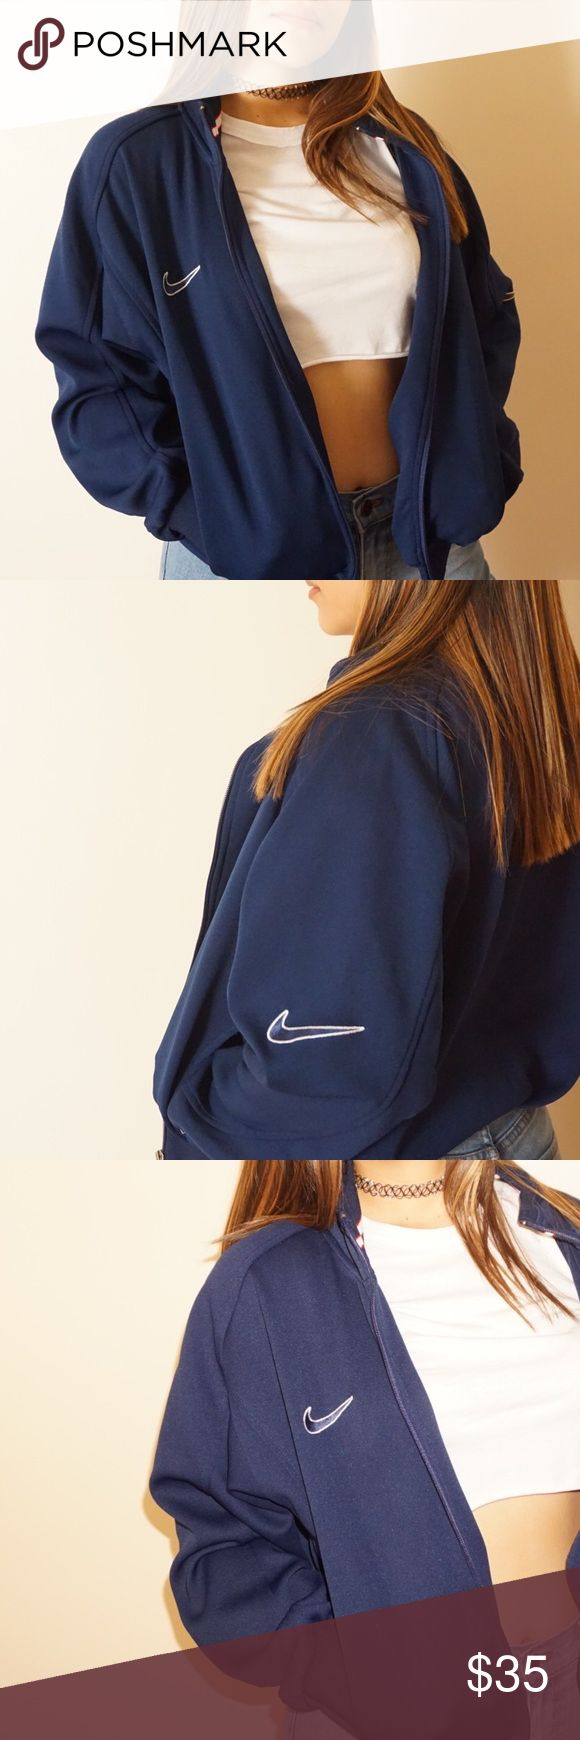 Vintage Nike Jacket Navy blue VINTAGE Nike Jacket! In beautiful condition! Nike Jackets & Coats